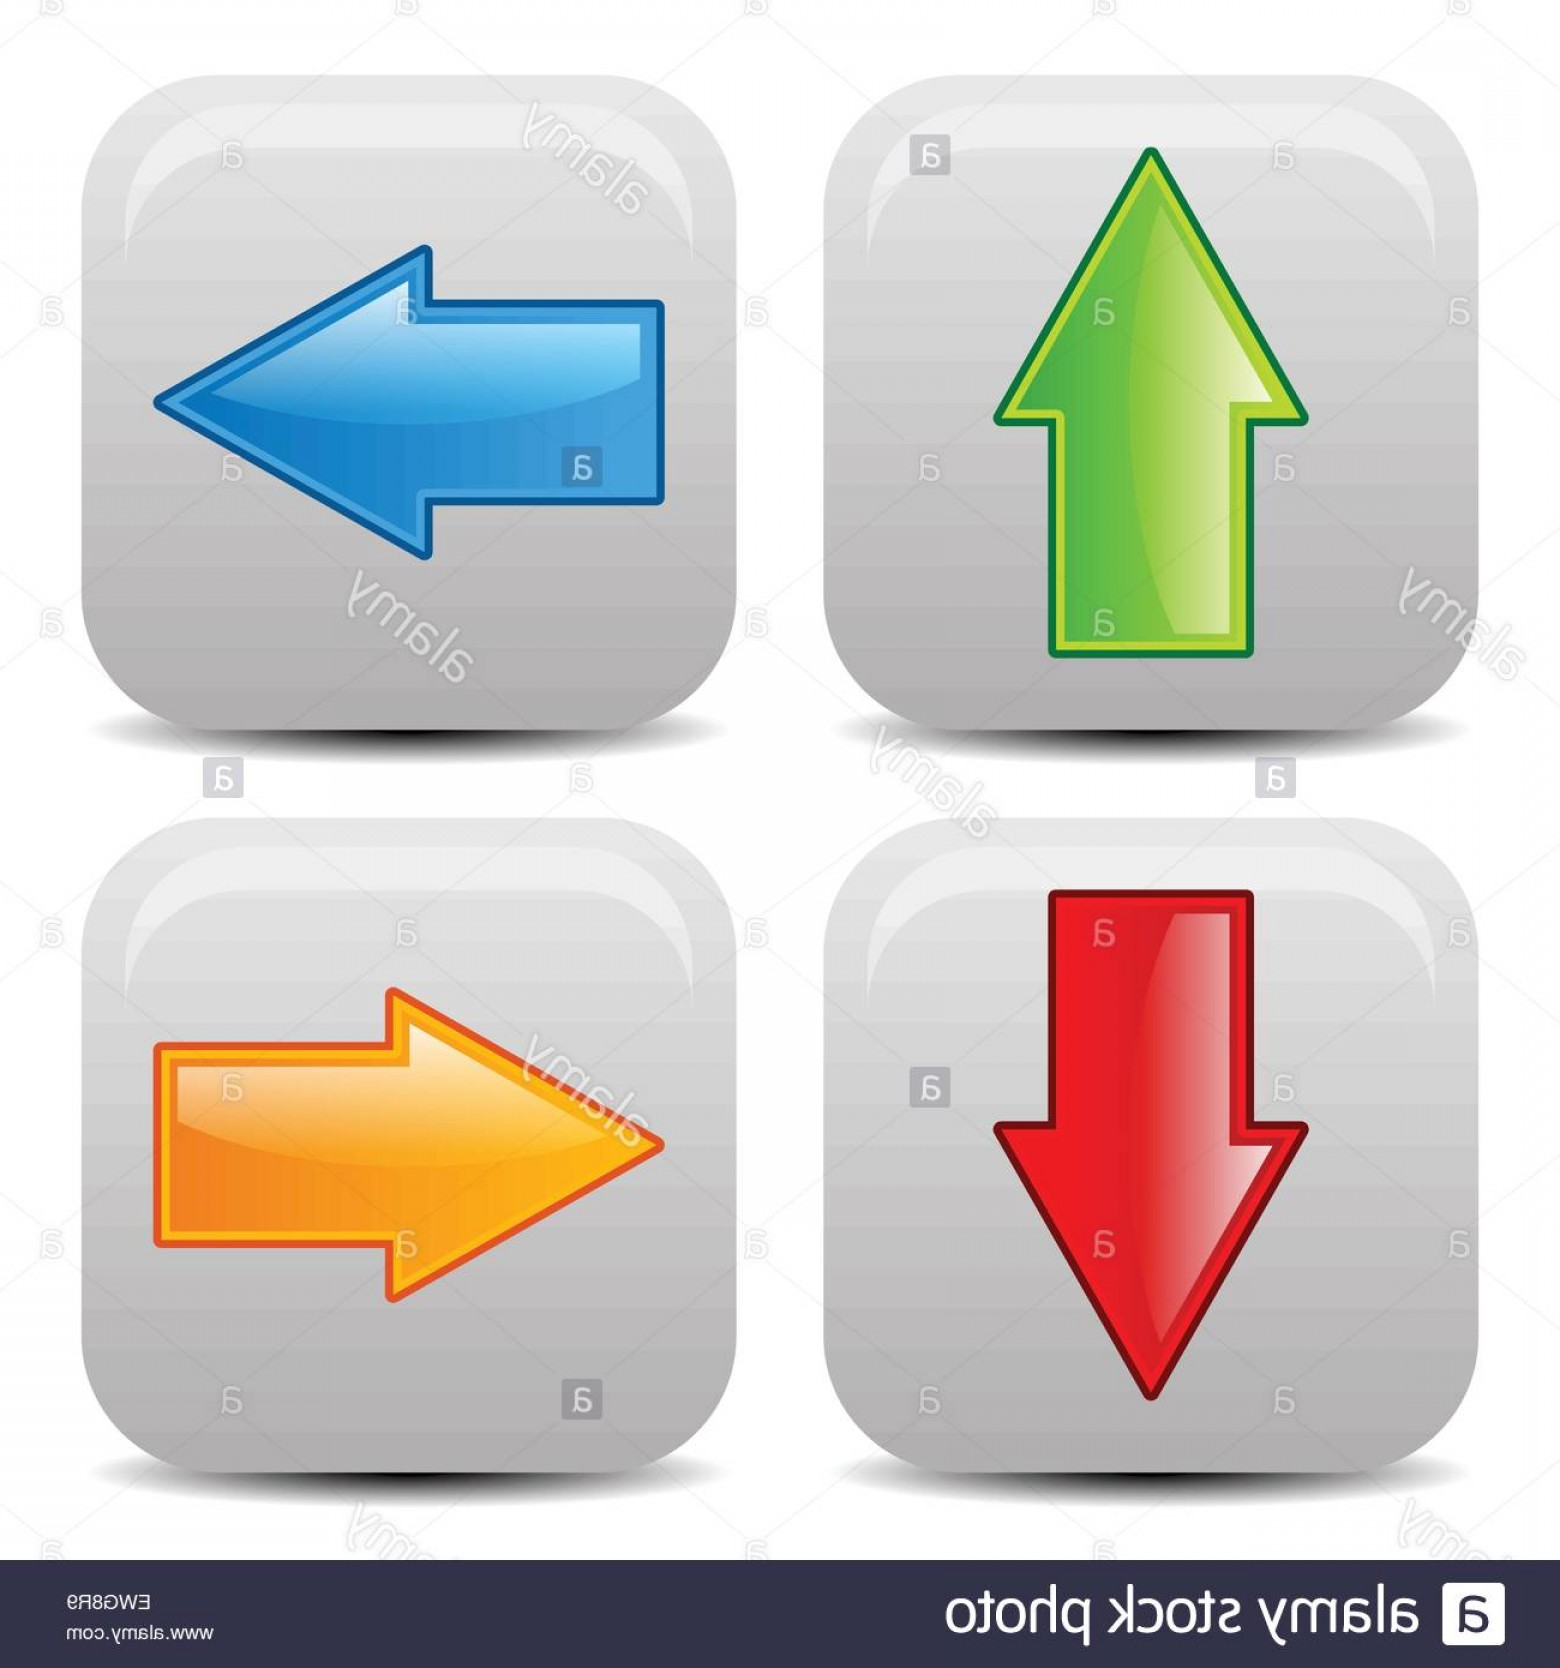 Up And Right Arrows Vector: Stock Photo Arrow Icons In All Direction Up Down Left Right Arrows